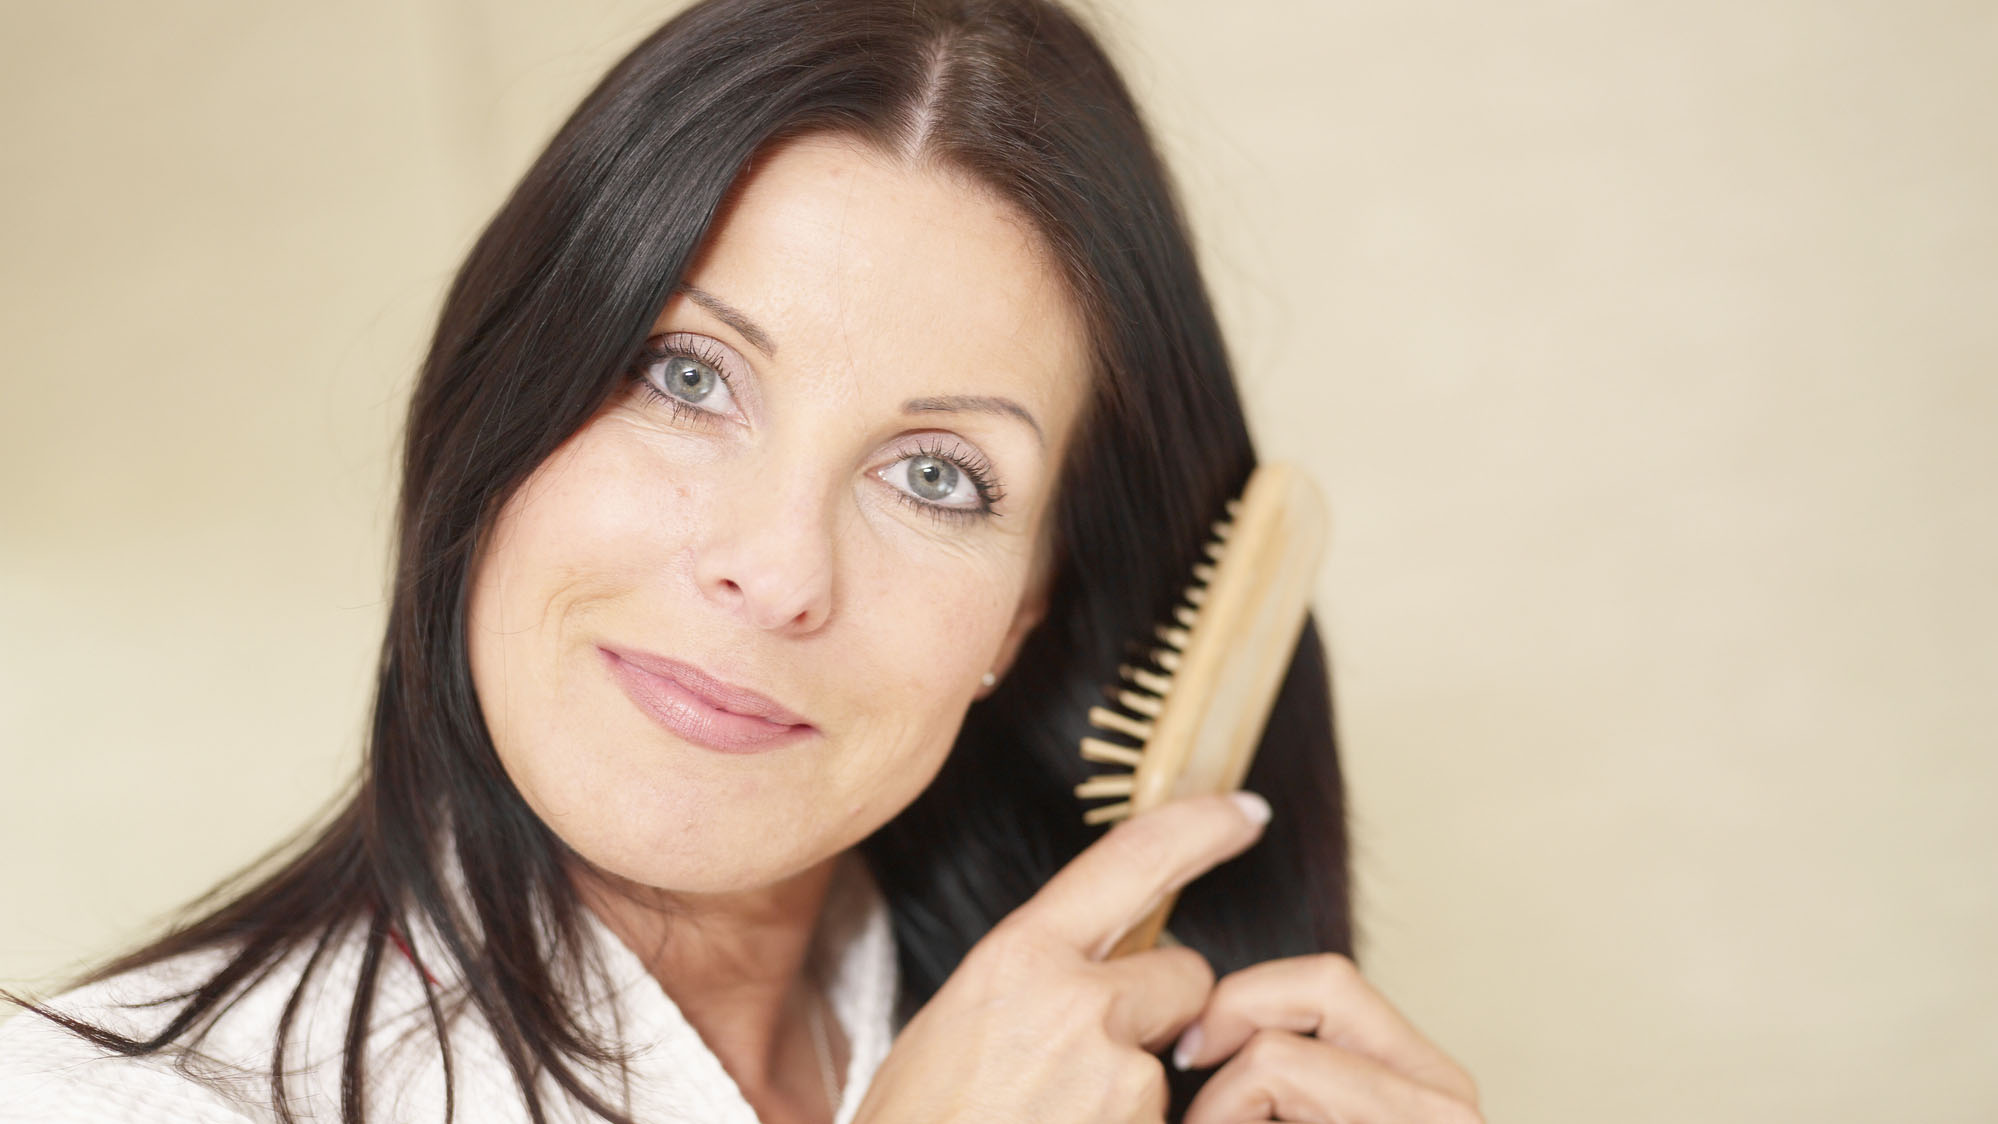 5 Natural Solutions for Regrowing Thinning Hair